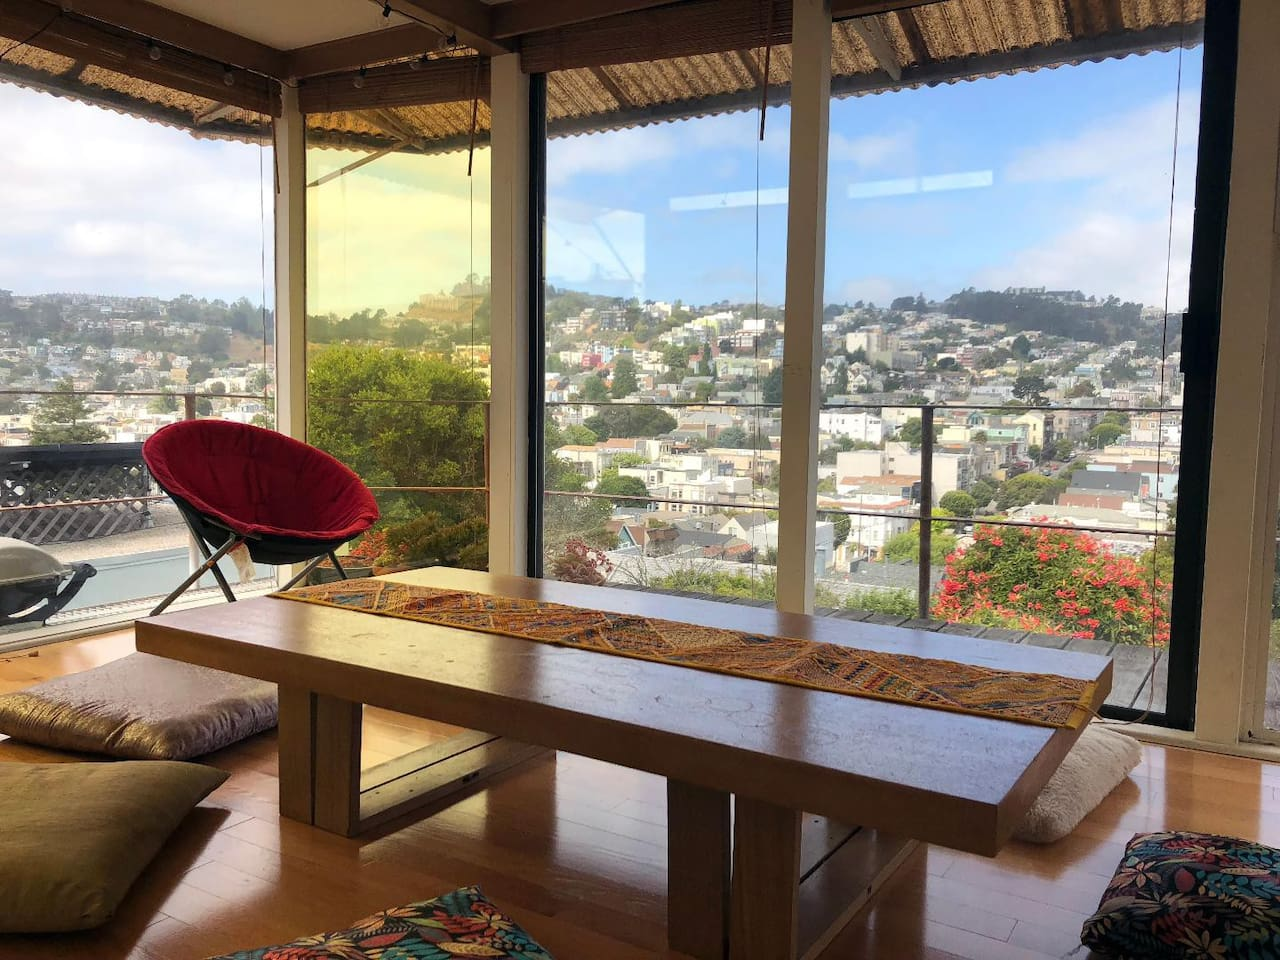 Our dining room /meditation room / hangout room with stunning San Francisco views is really the jewel of our apartment...